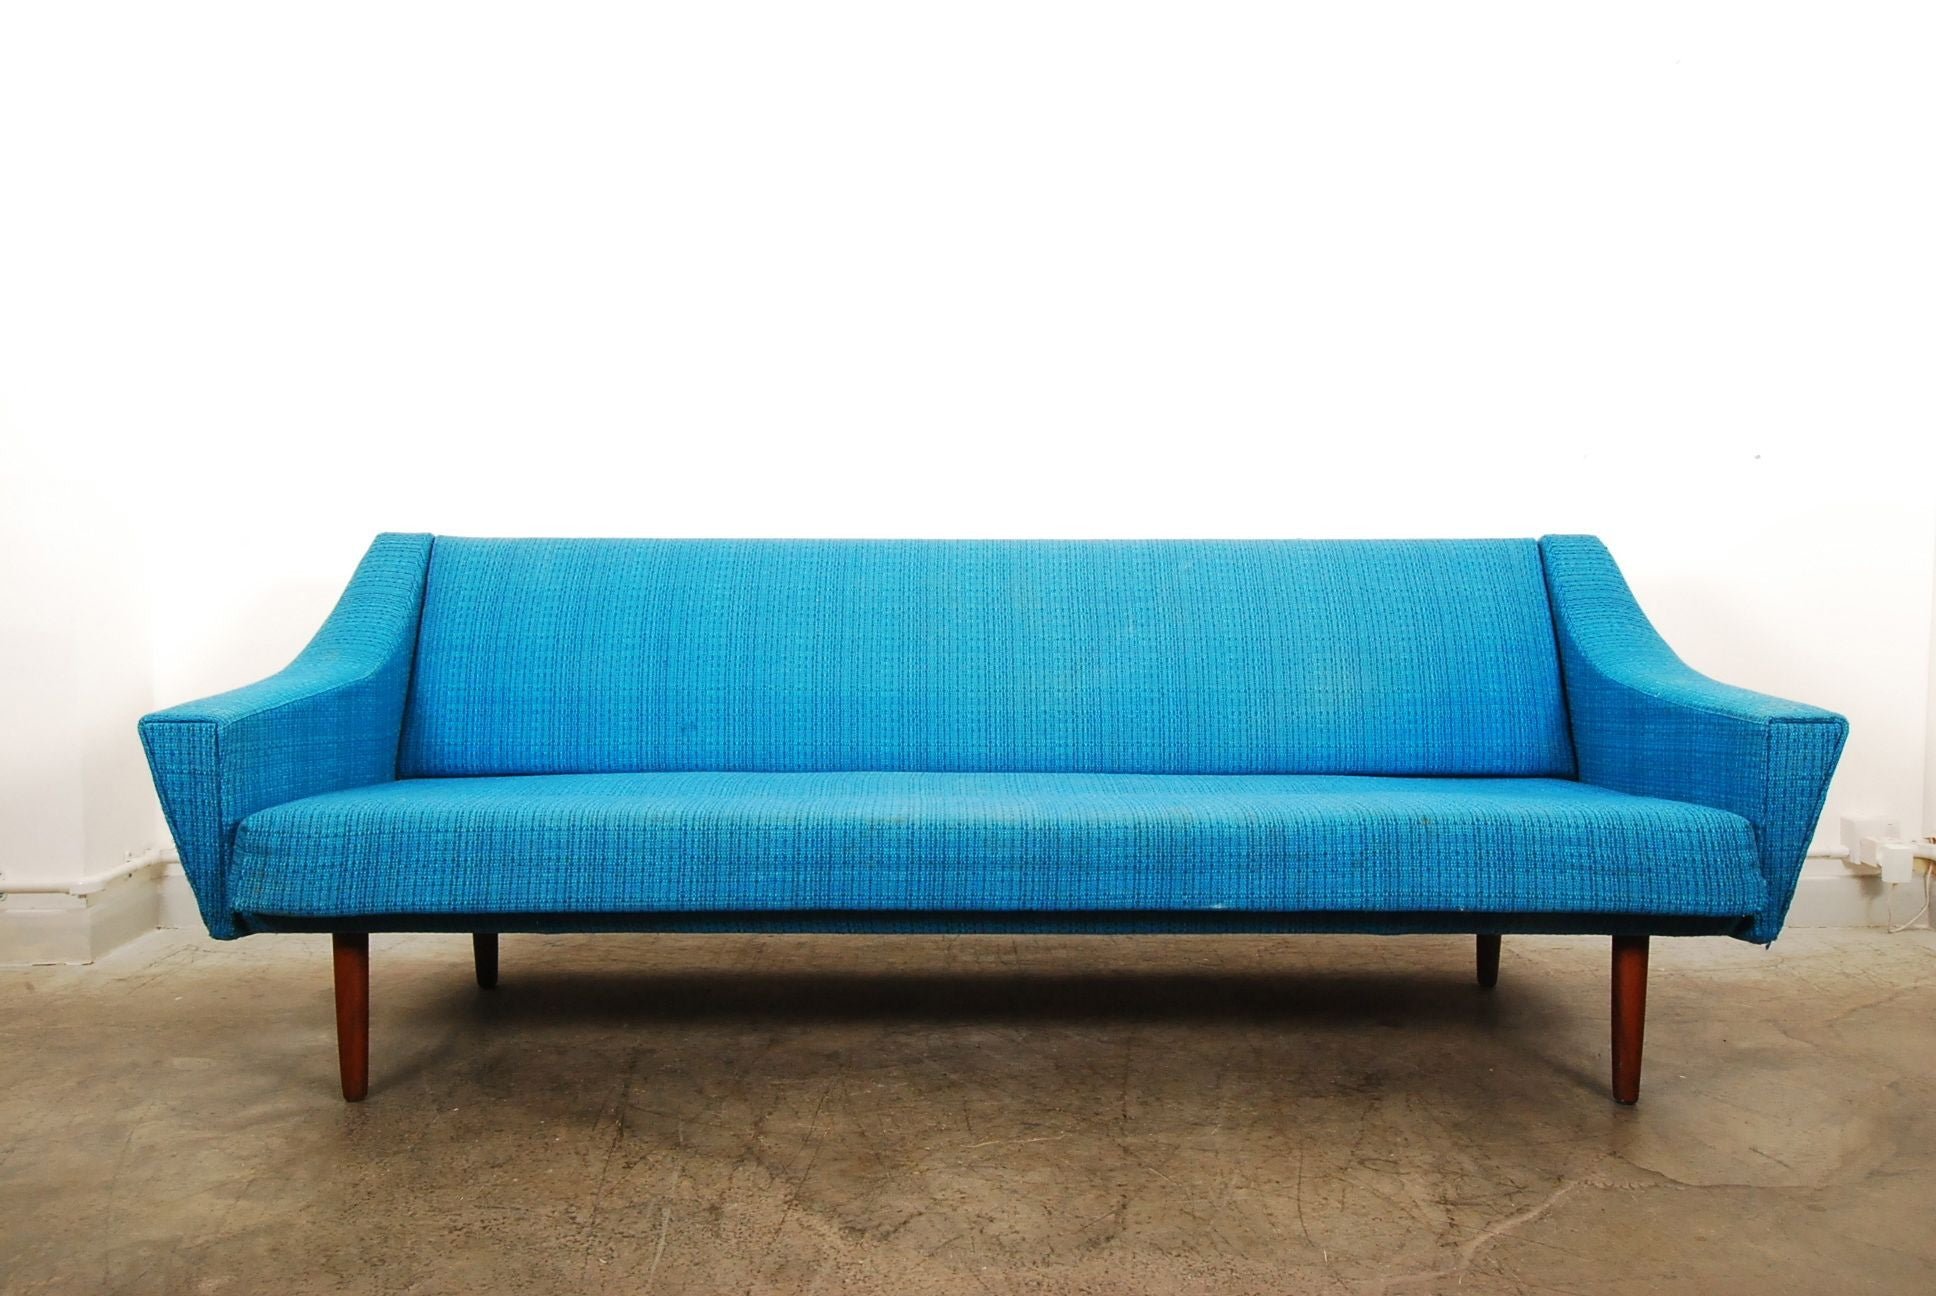 Three seat sofa / daybed